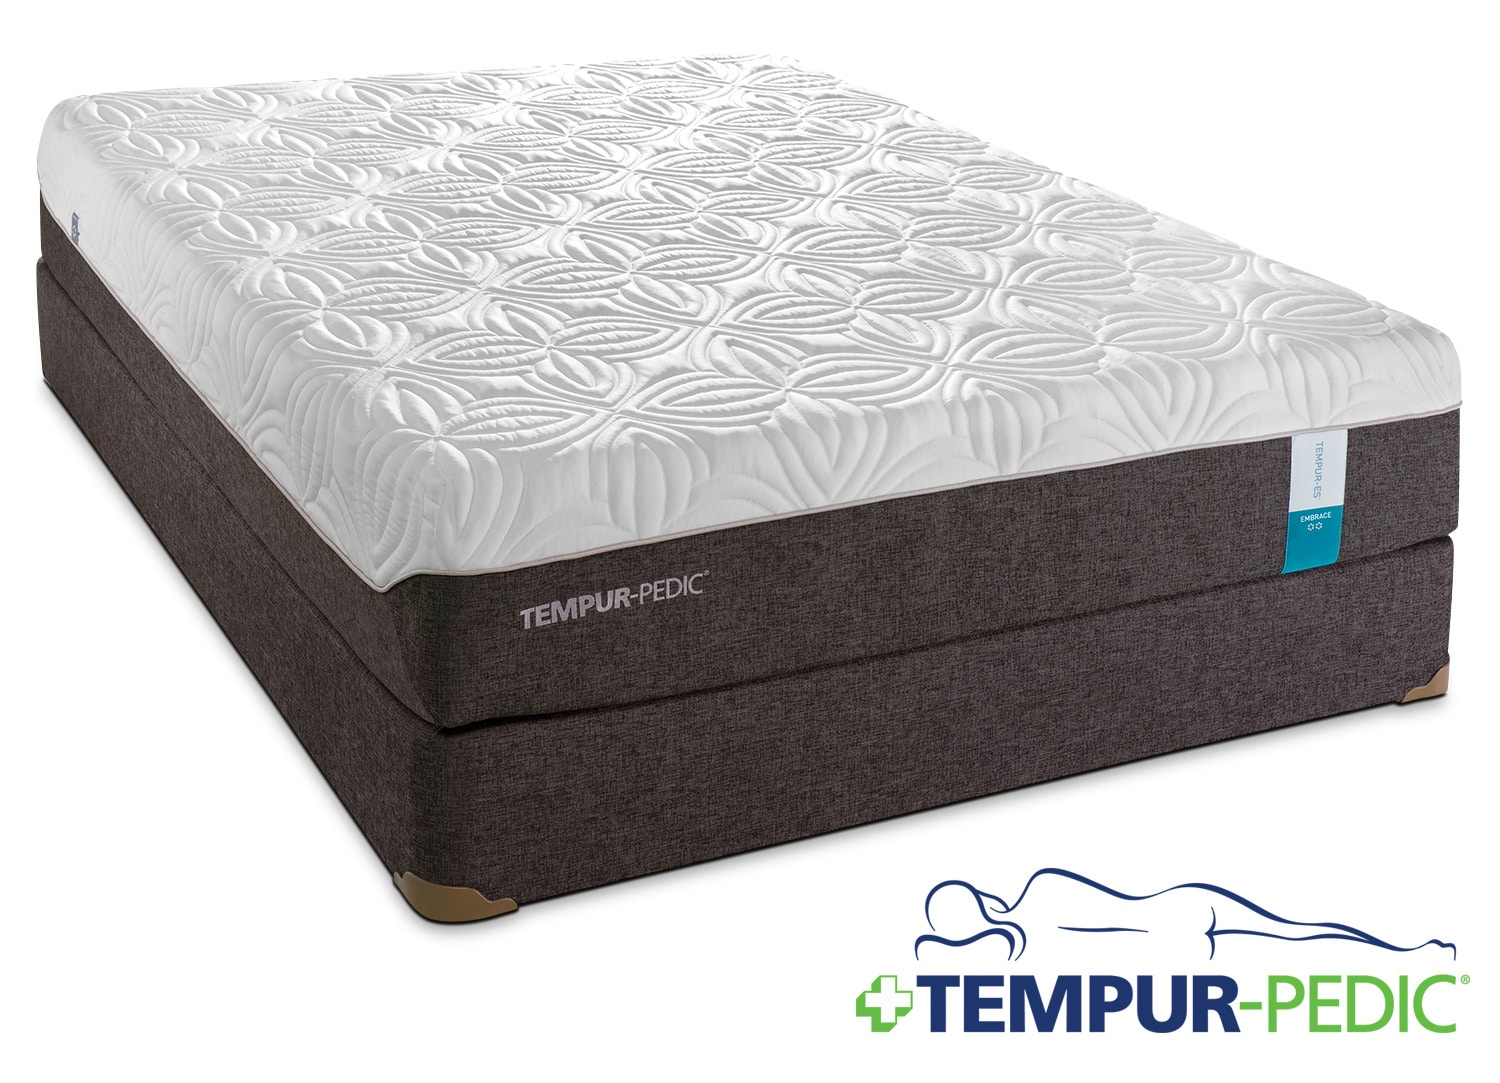 Mattresses and Bedding - Tempur-Pedic Embrace 2.0 Plush Queen Mattress and Boxspring Set